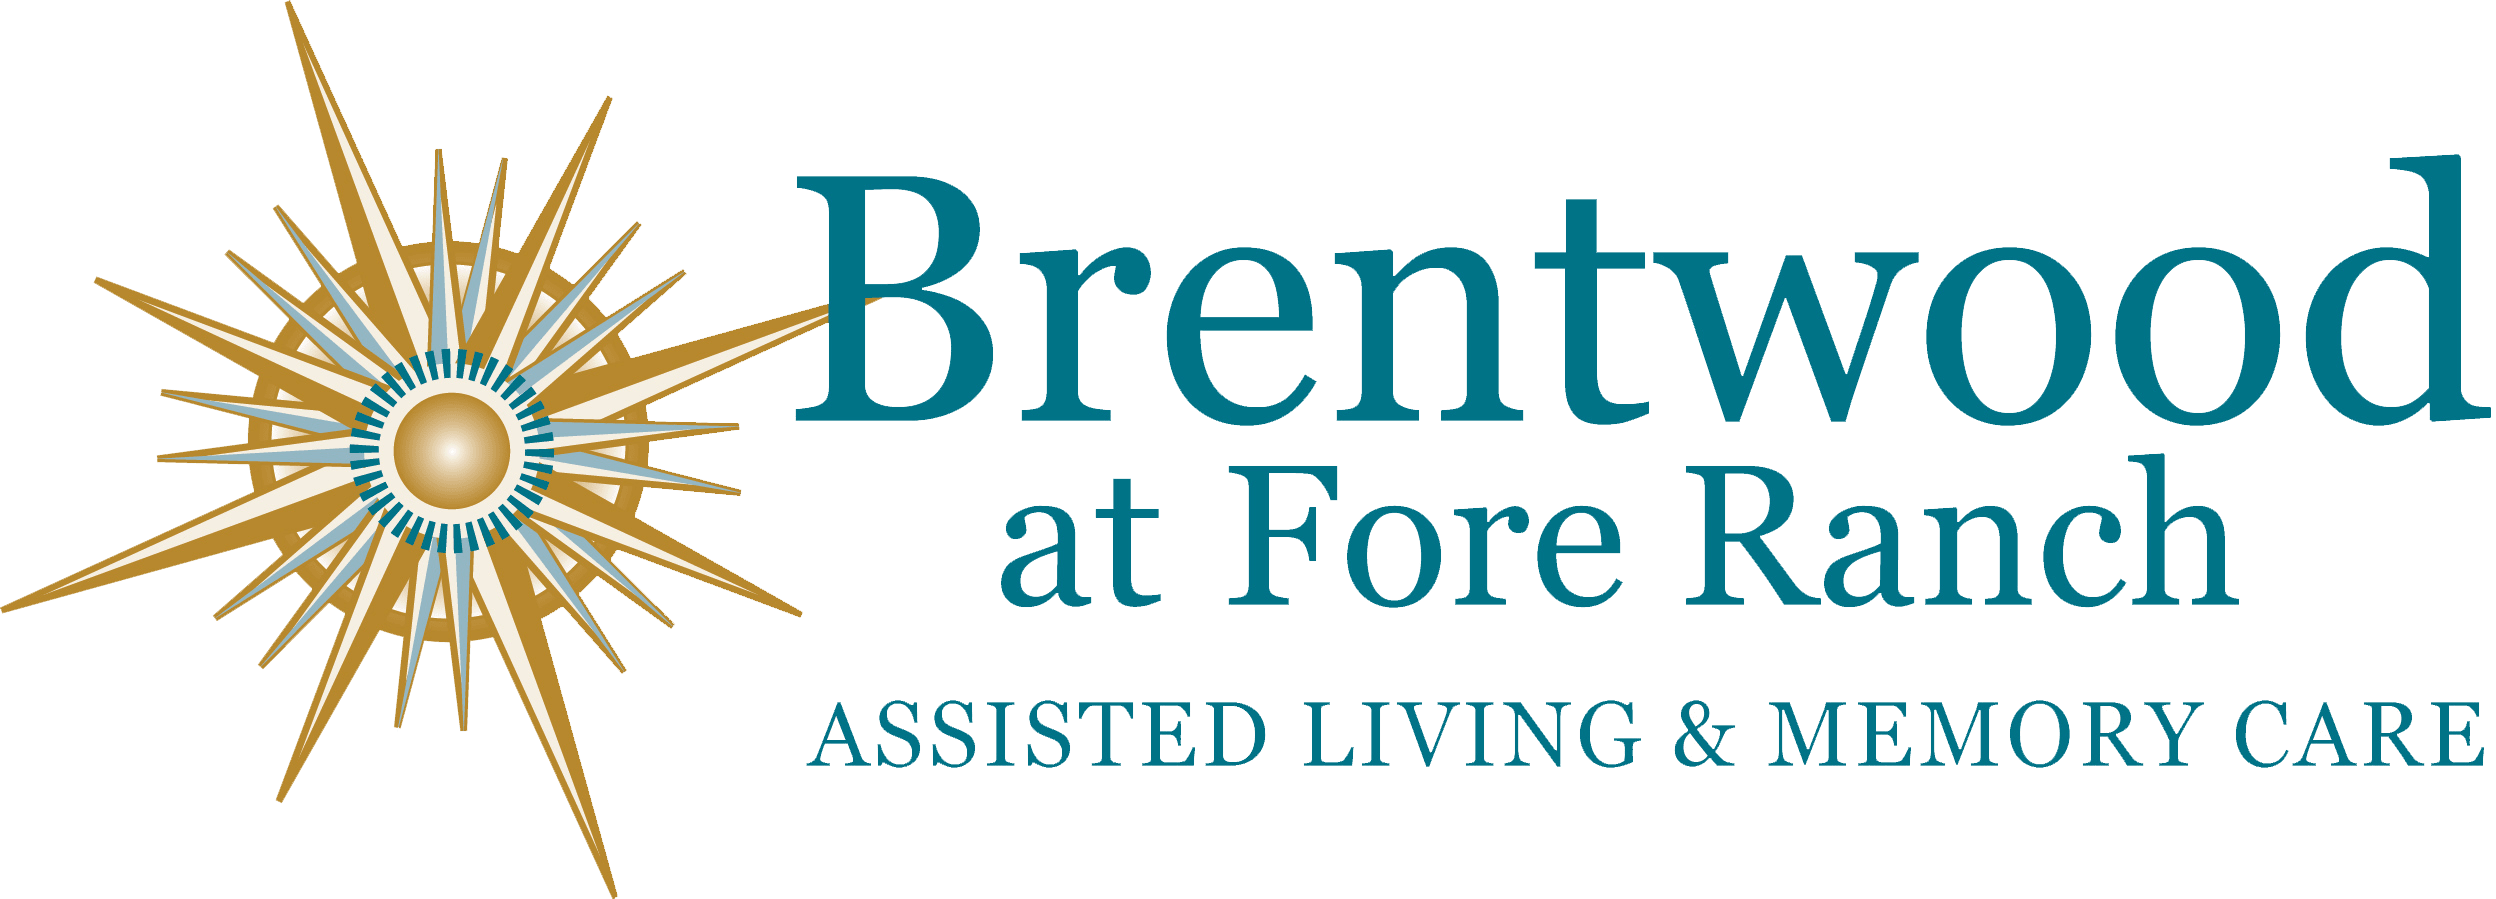 Brentwood at Fore Ranch Logo